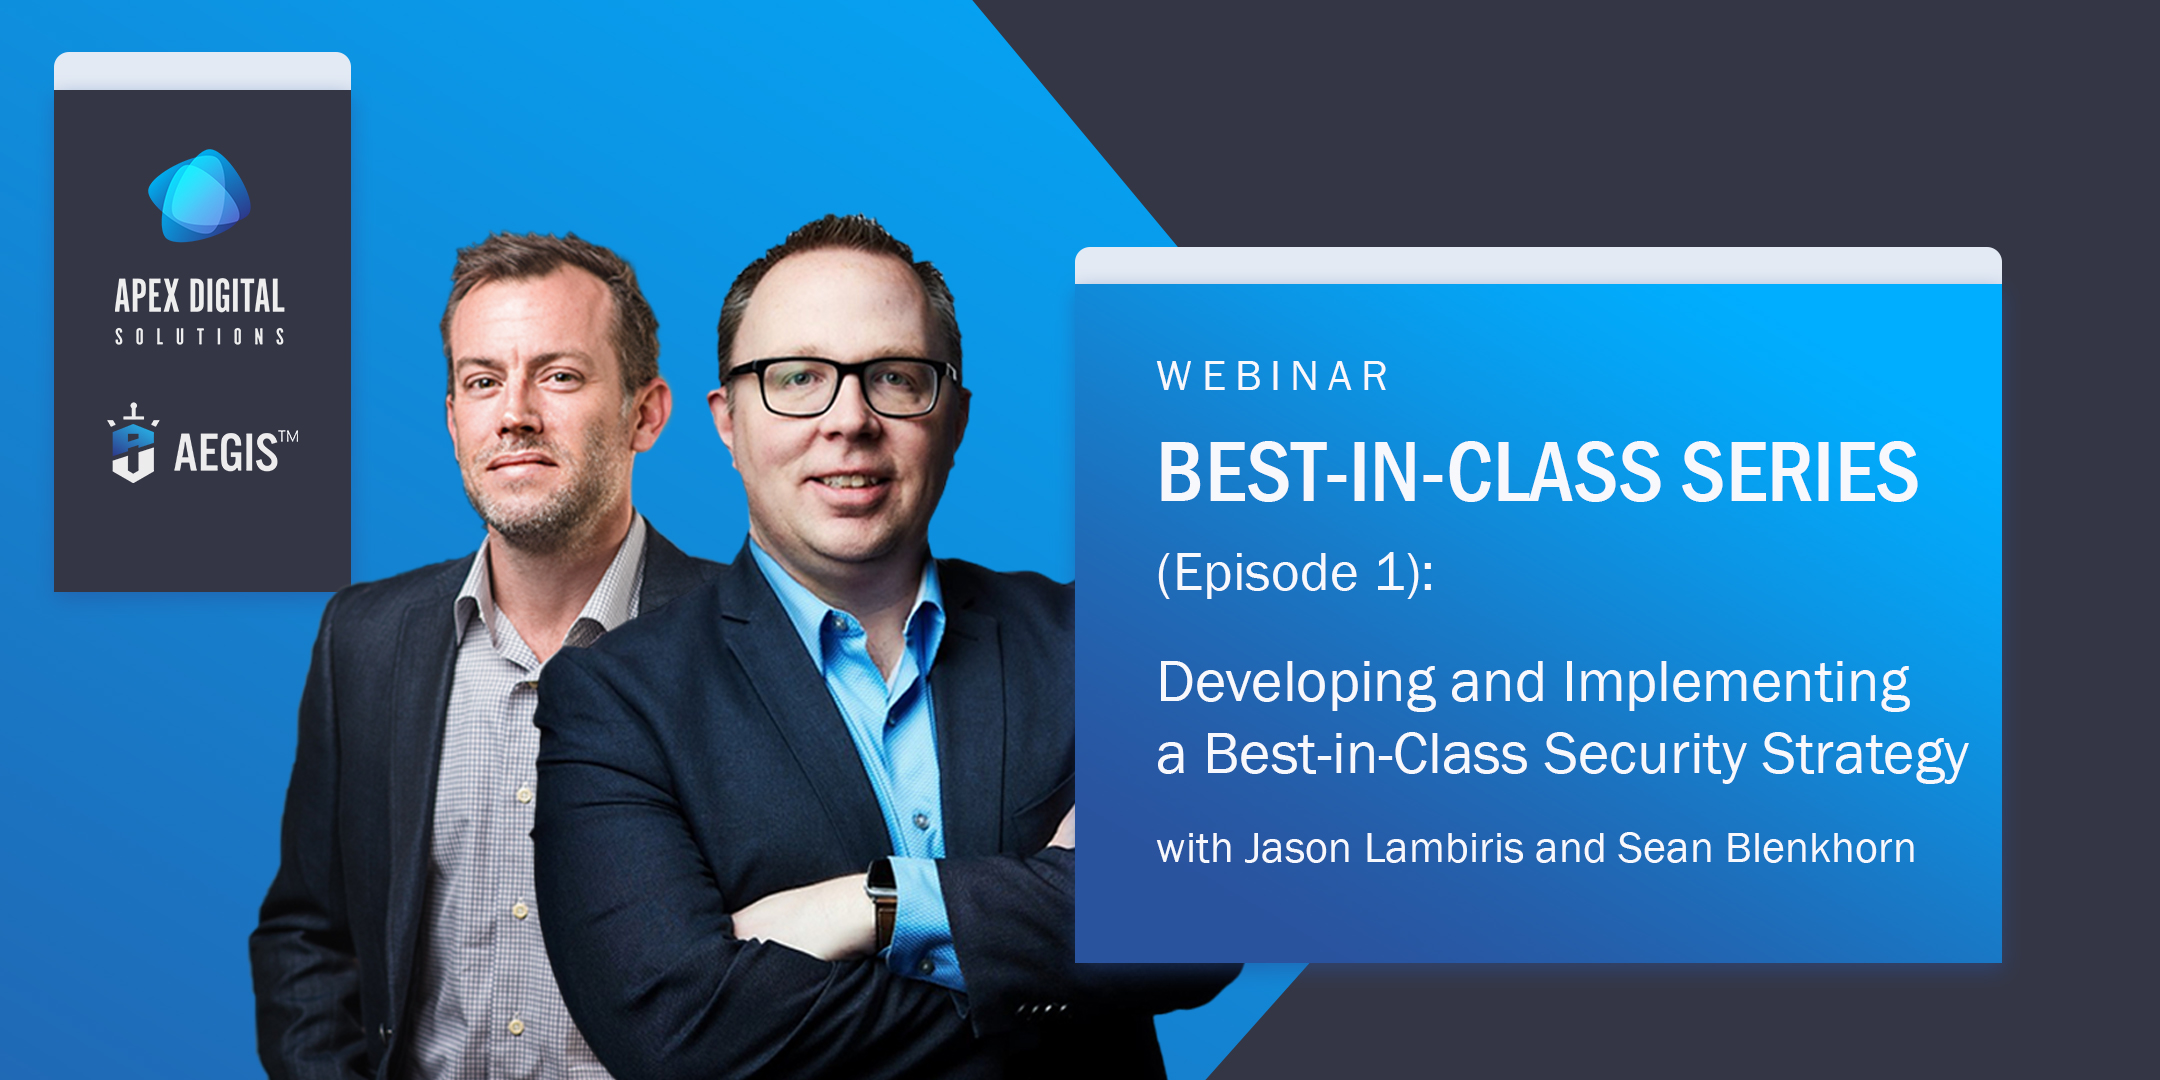 Webinar, Microsoft Security, Apex Digital Solutions, Aegis, Jason Lambiris, Sean Blenkhorn